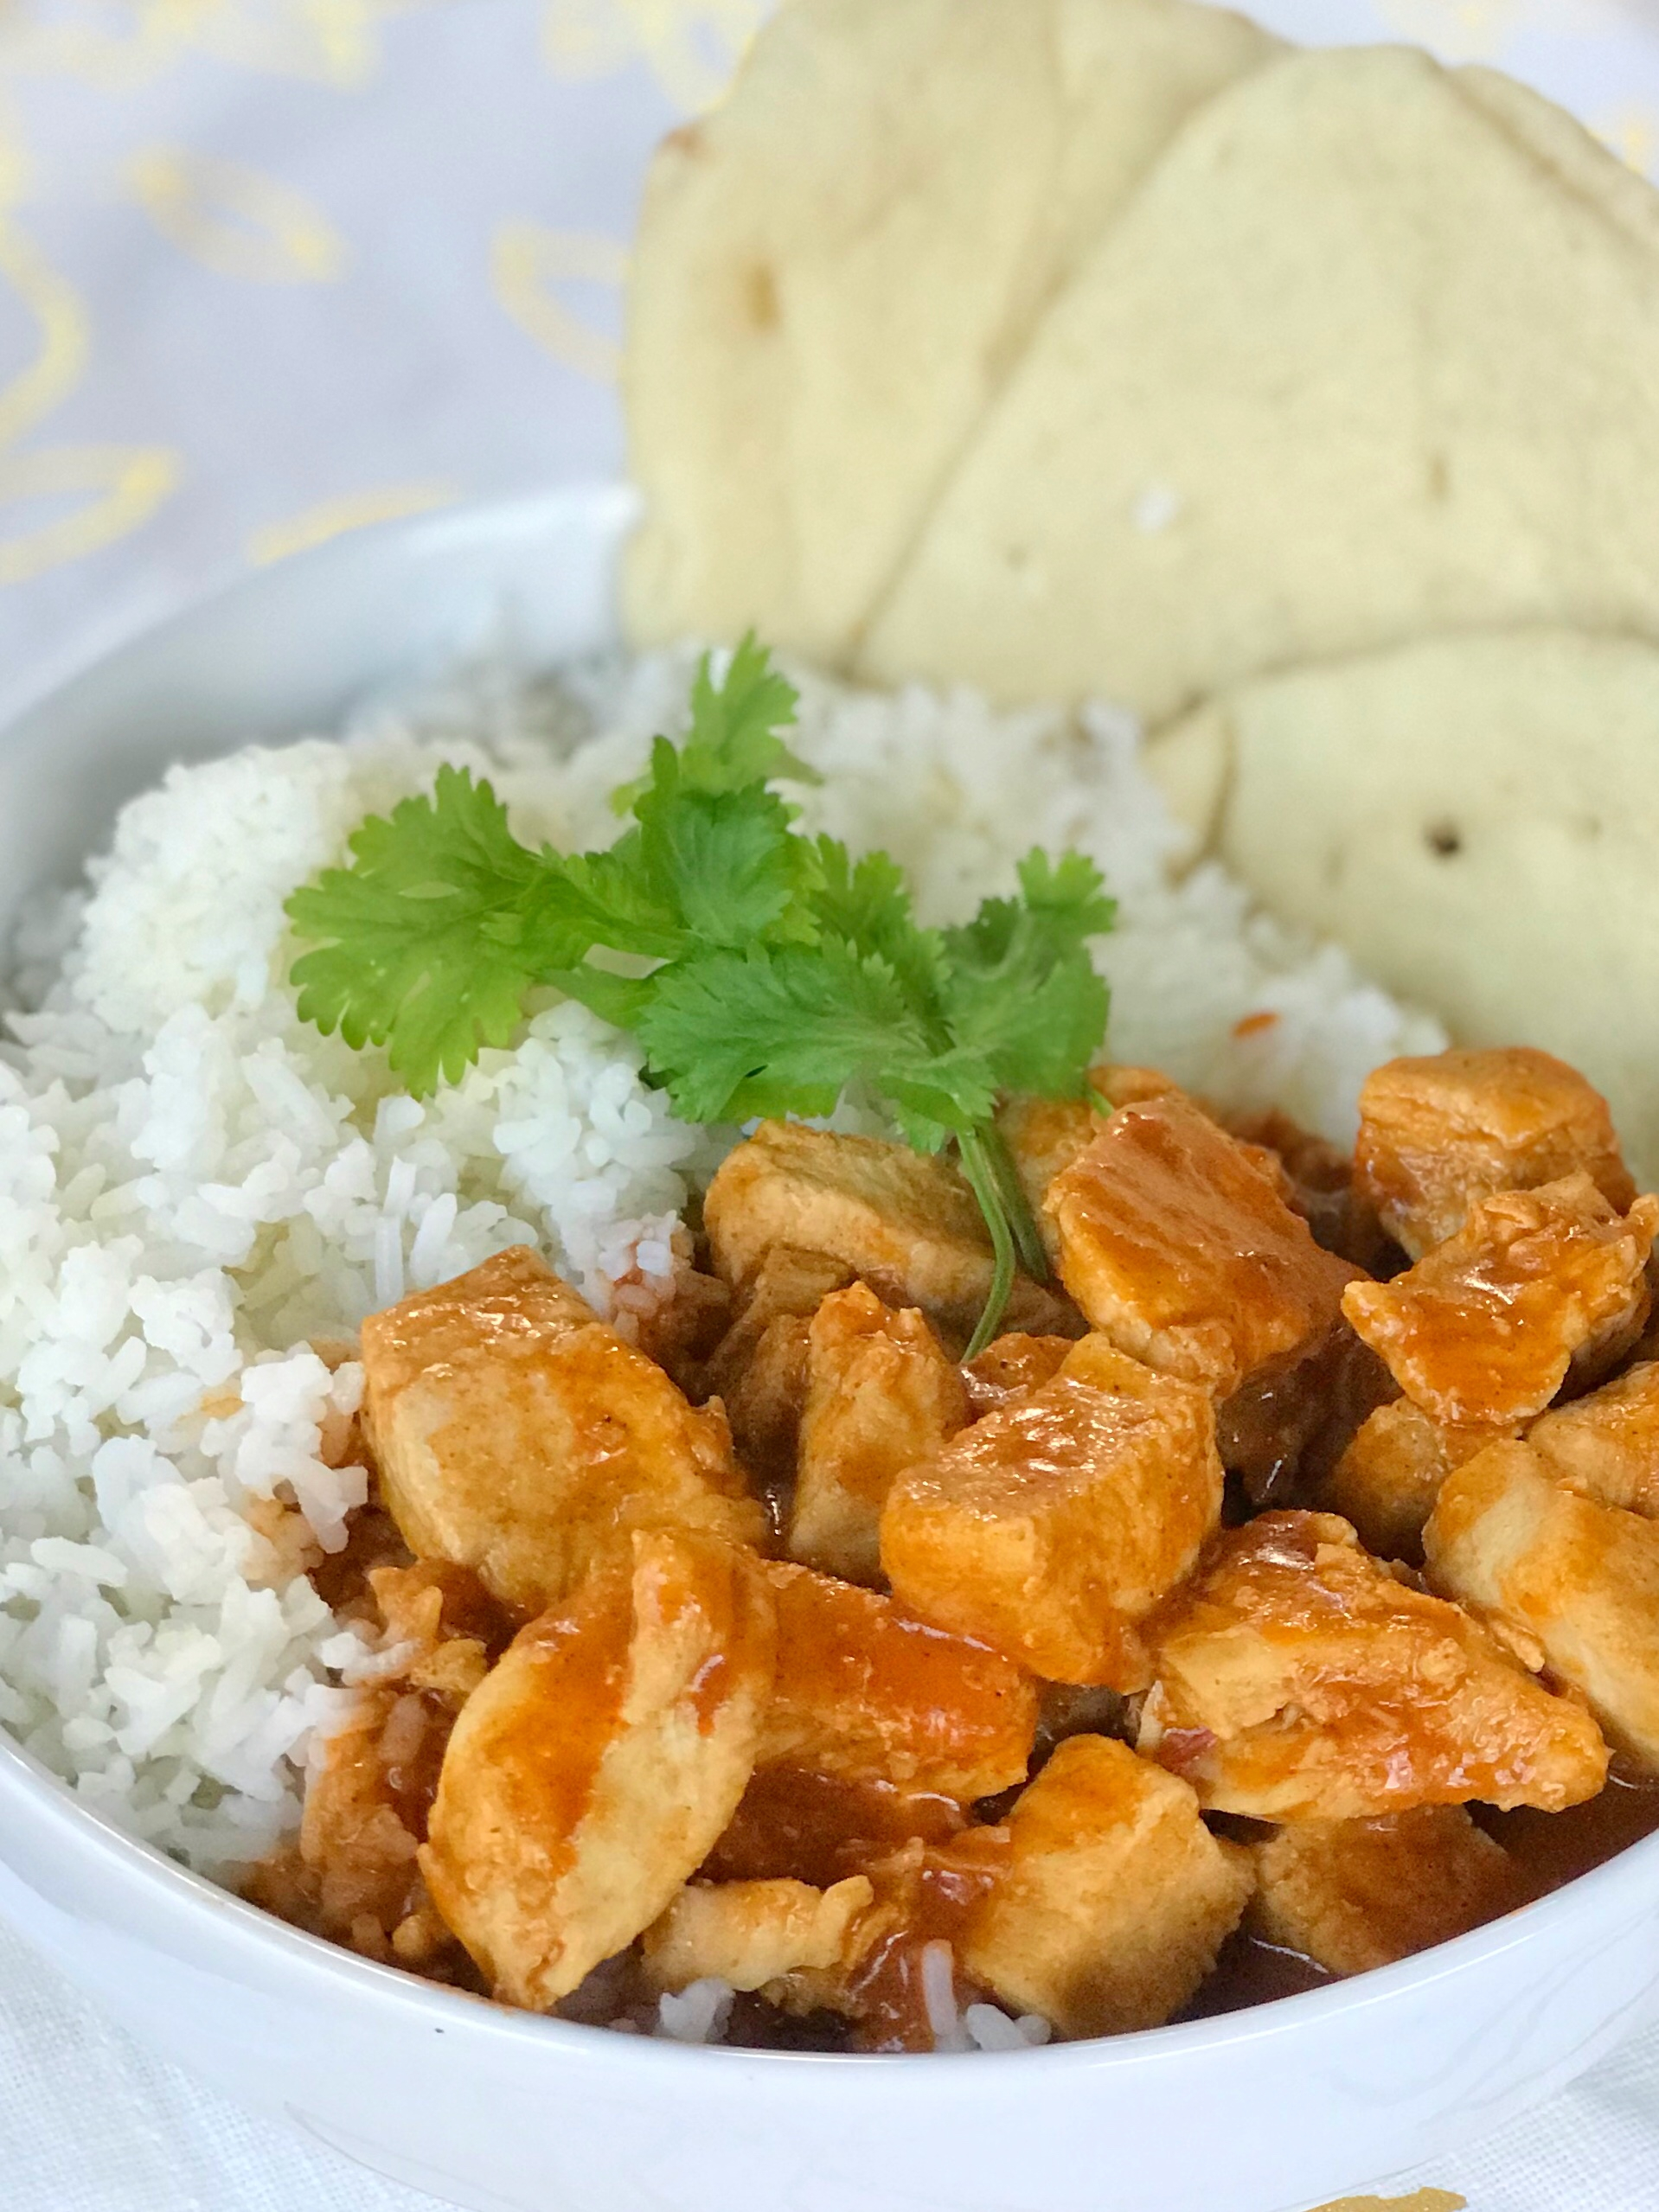 Easy Indian Butter Chicken With Homemade Naan Bread Recipe